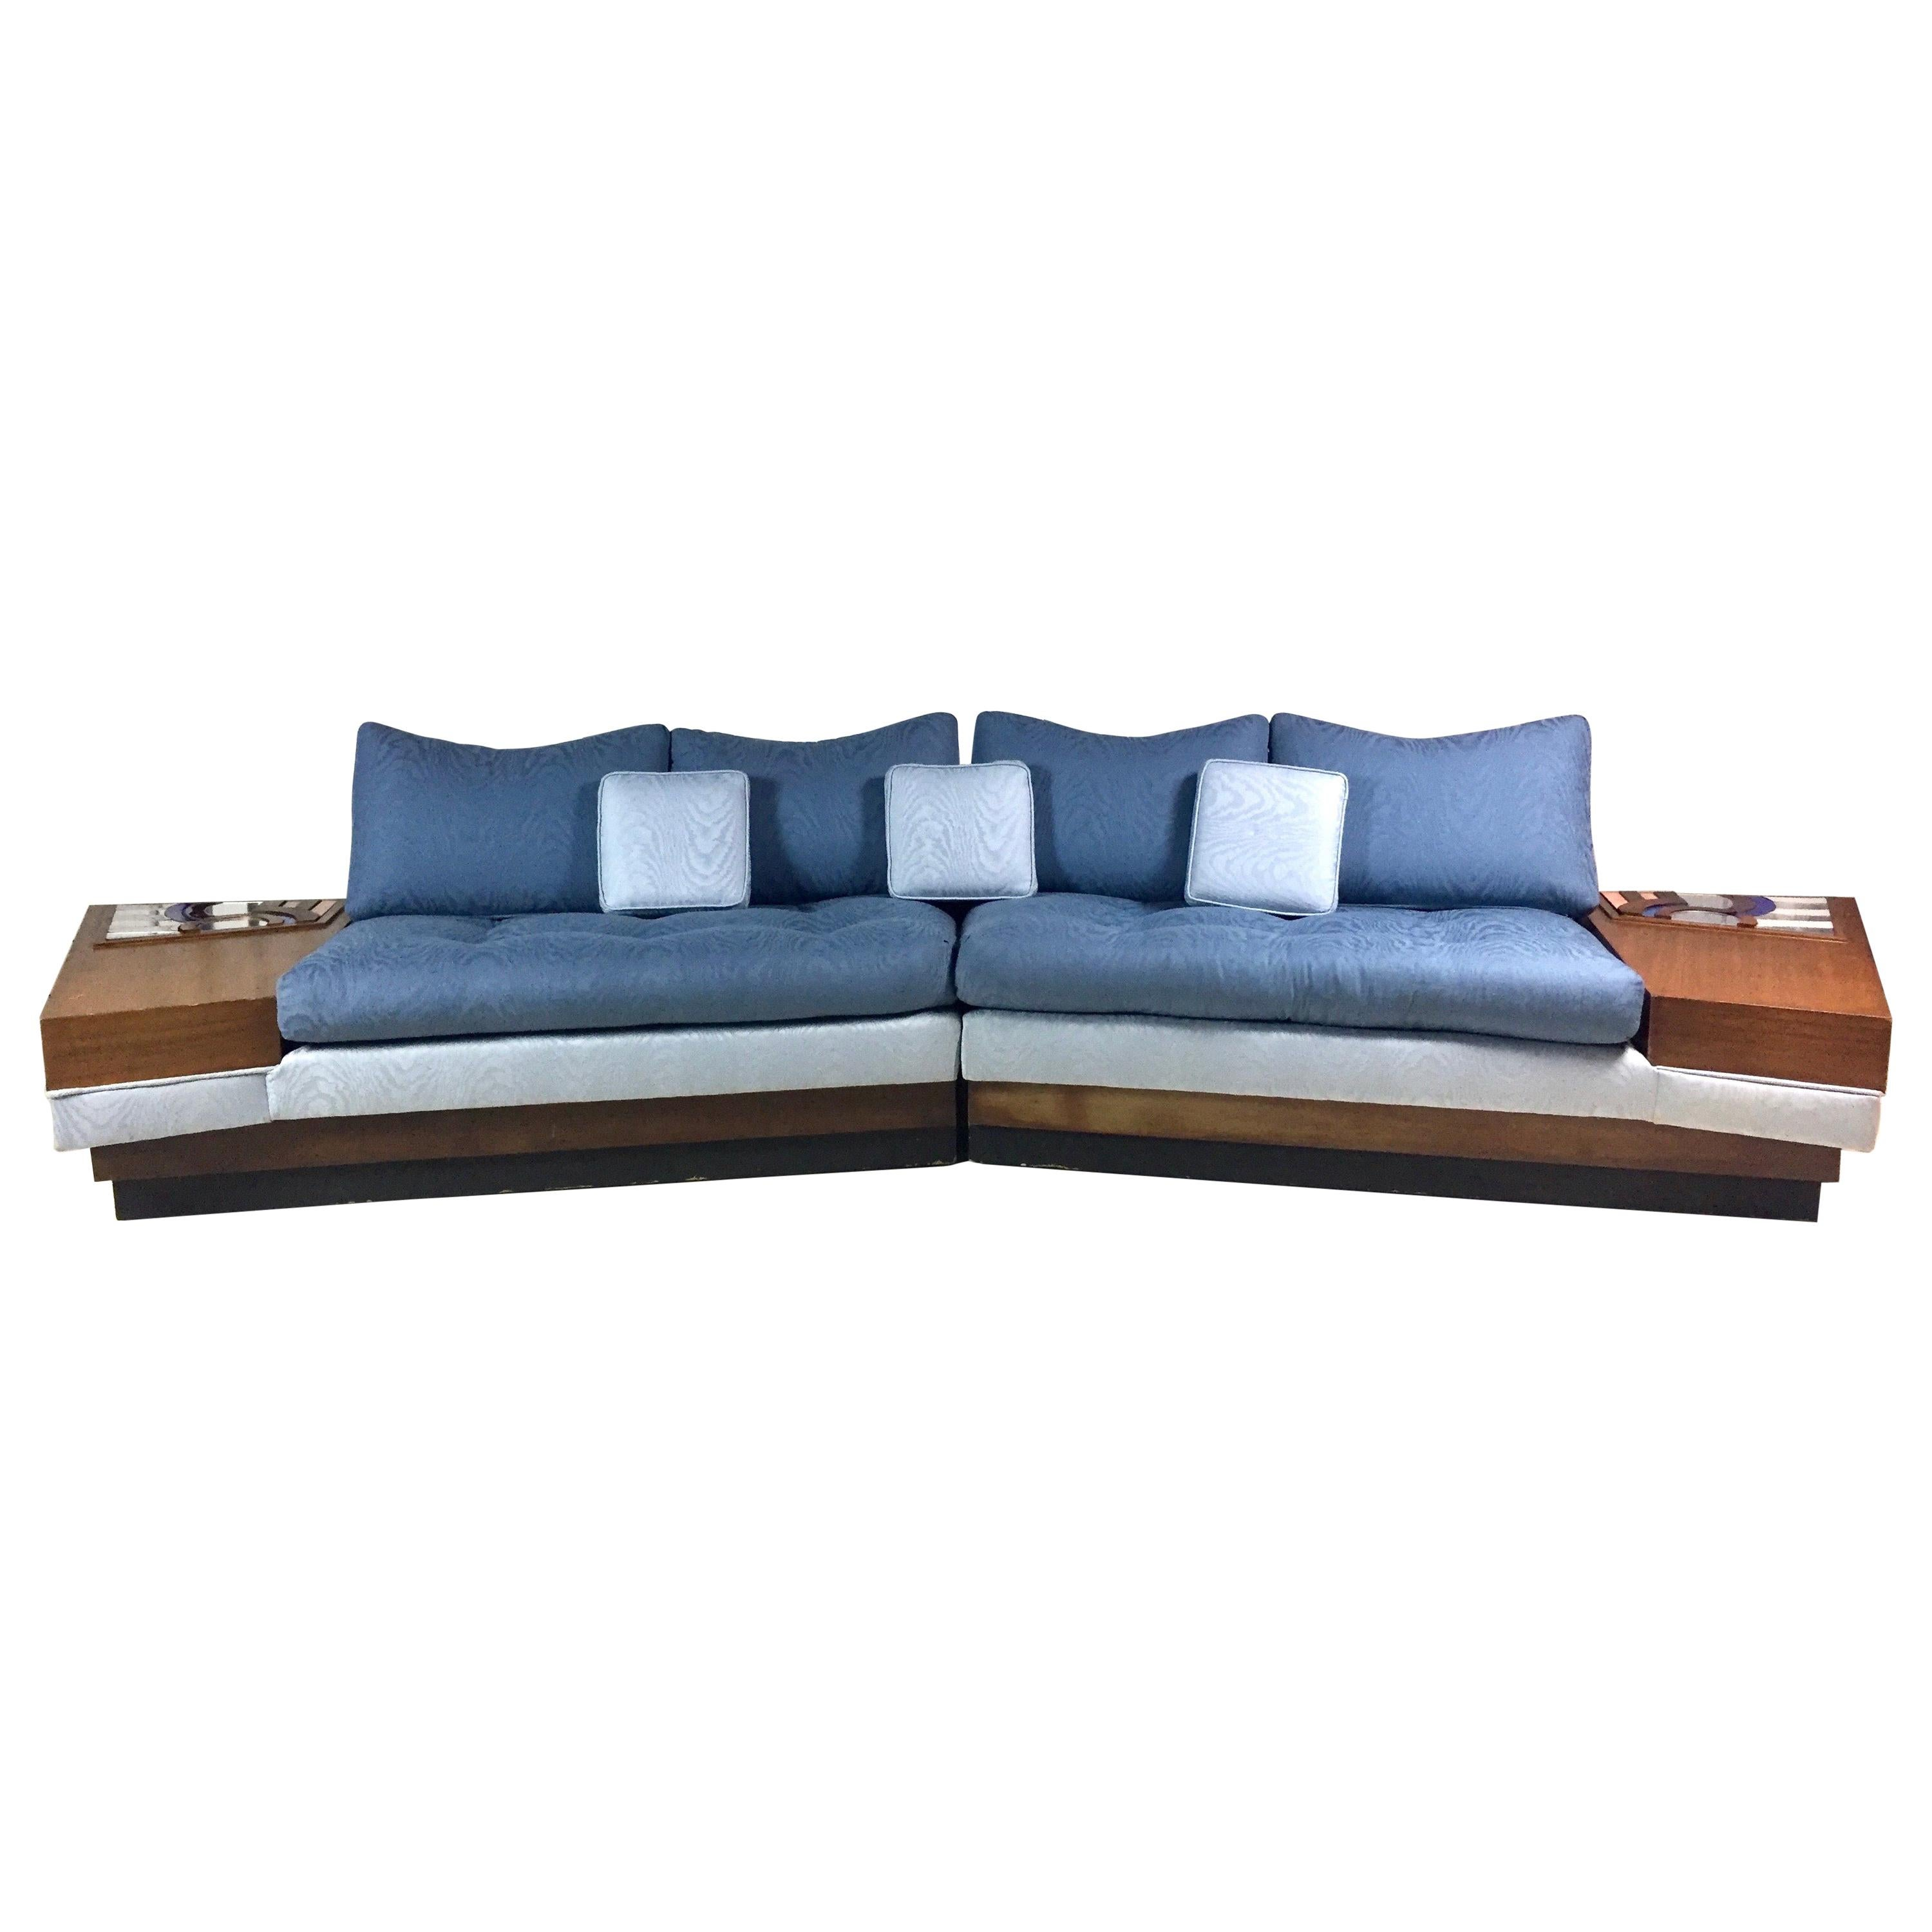 Surprising Midcentury Adrian Pearsall Craft Associates Sectional Sofa With Built In Tables Caraccident5 Cool Chair Designs And Ideas Caraccident5Info